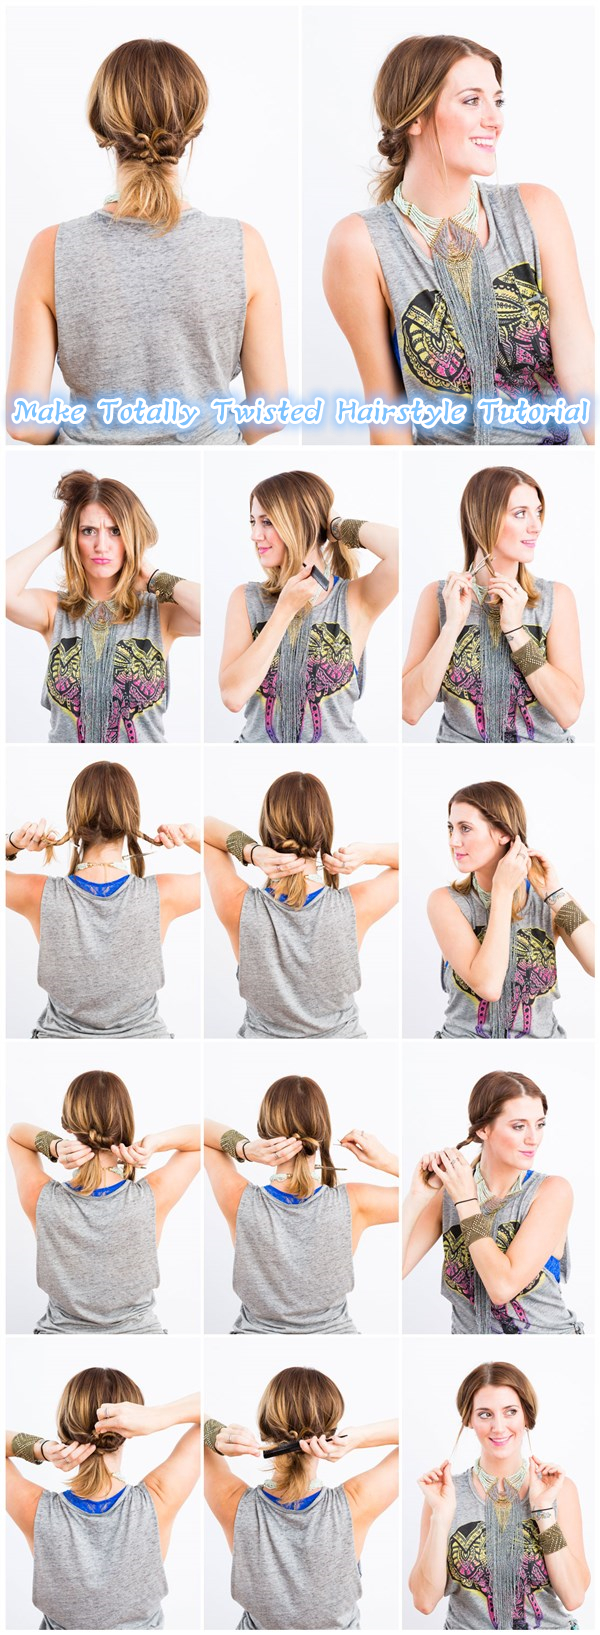 Make Totally Twisted Hairstyle Tutorial